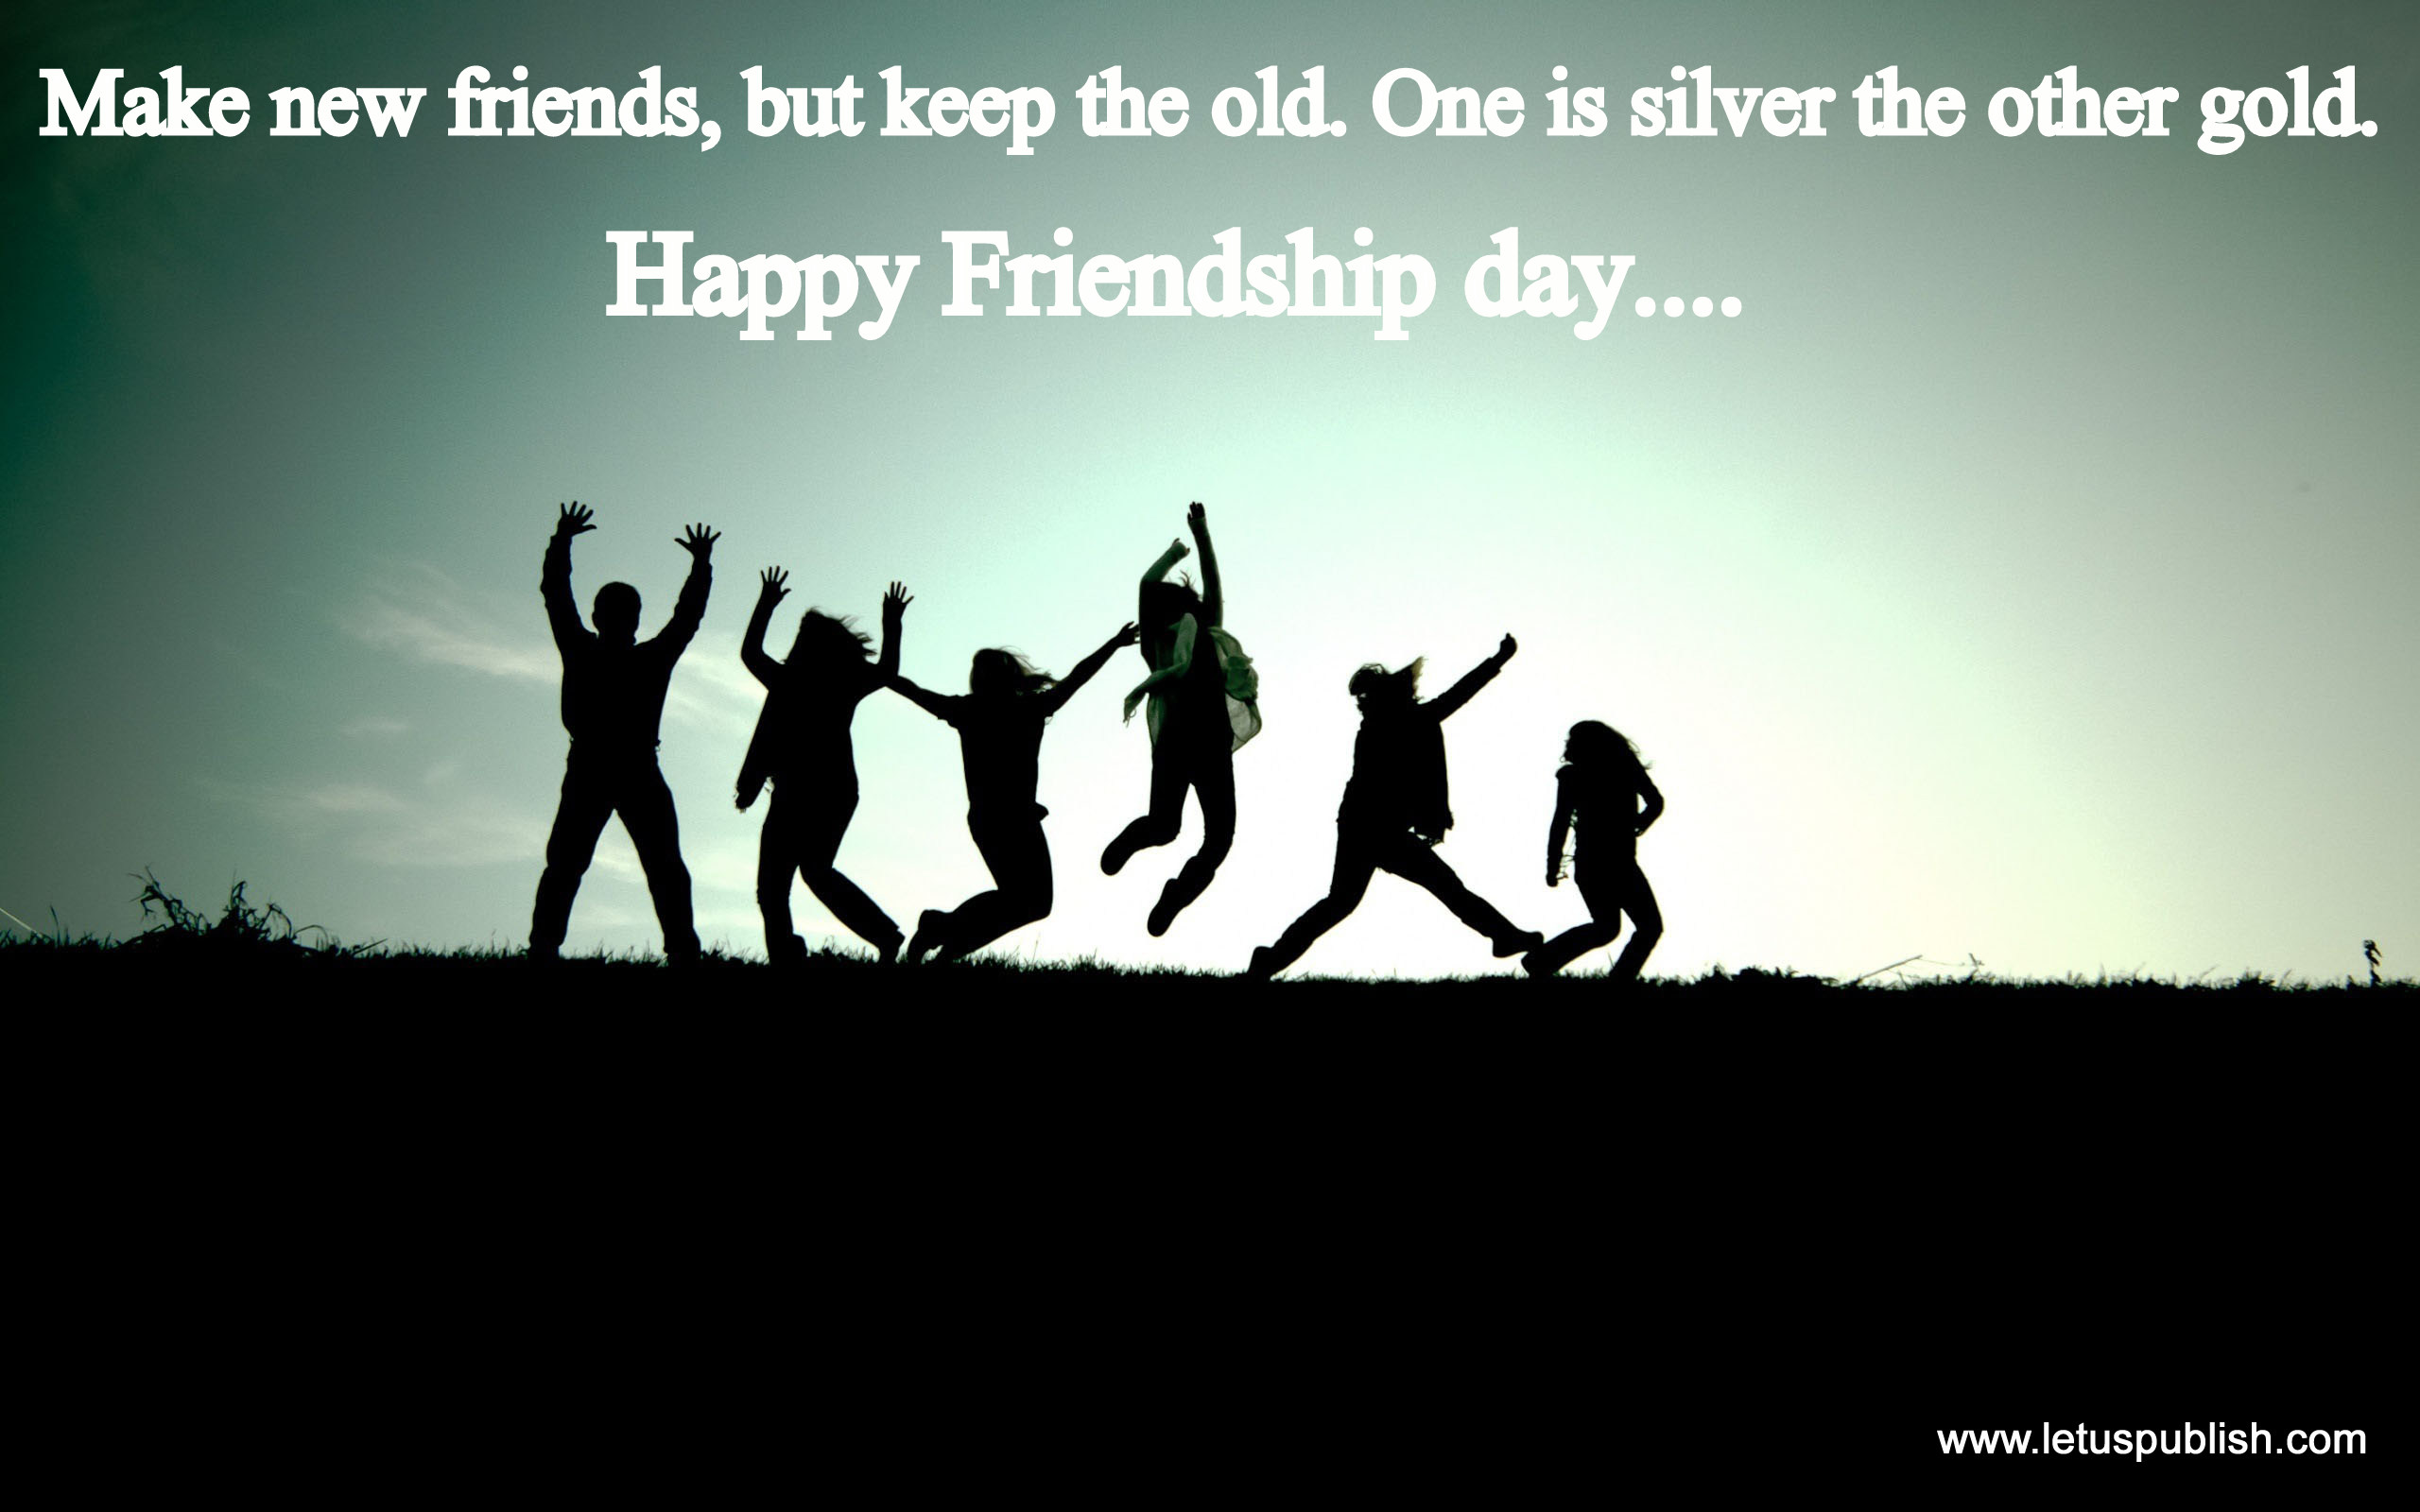 Friendship day desktop wallpaper